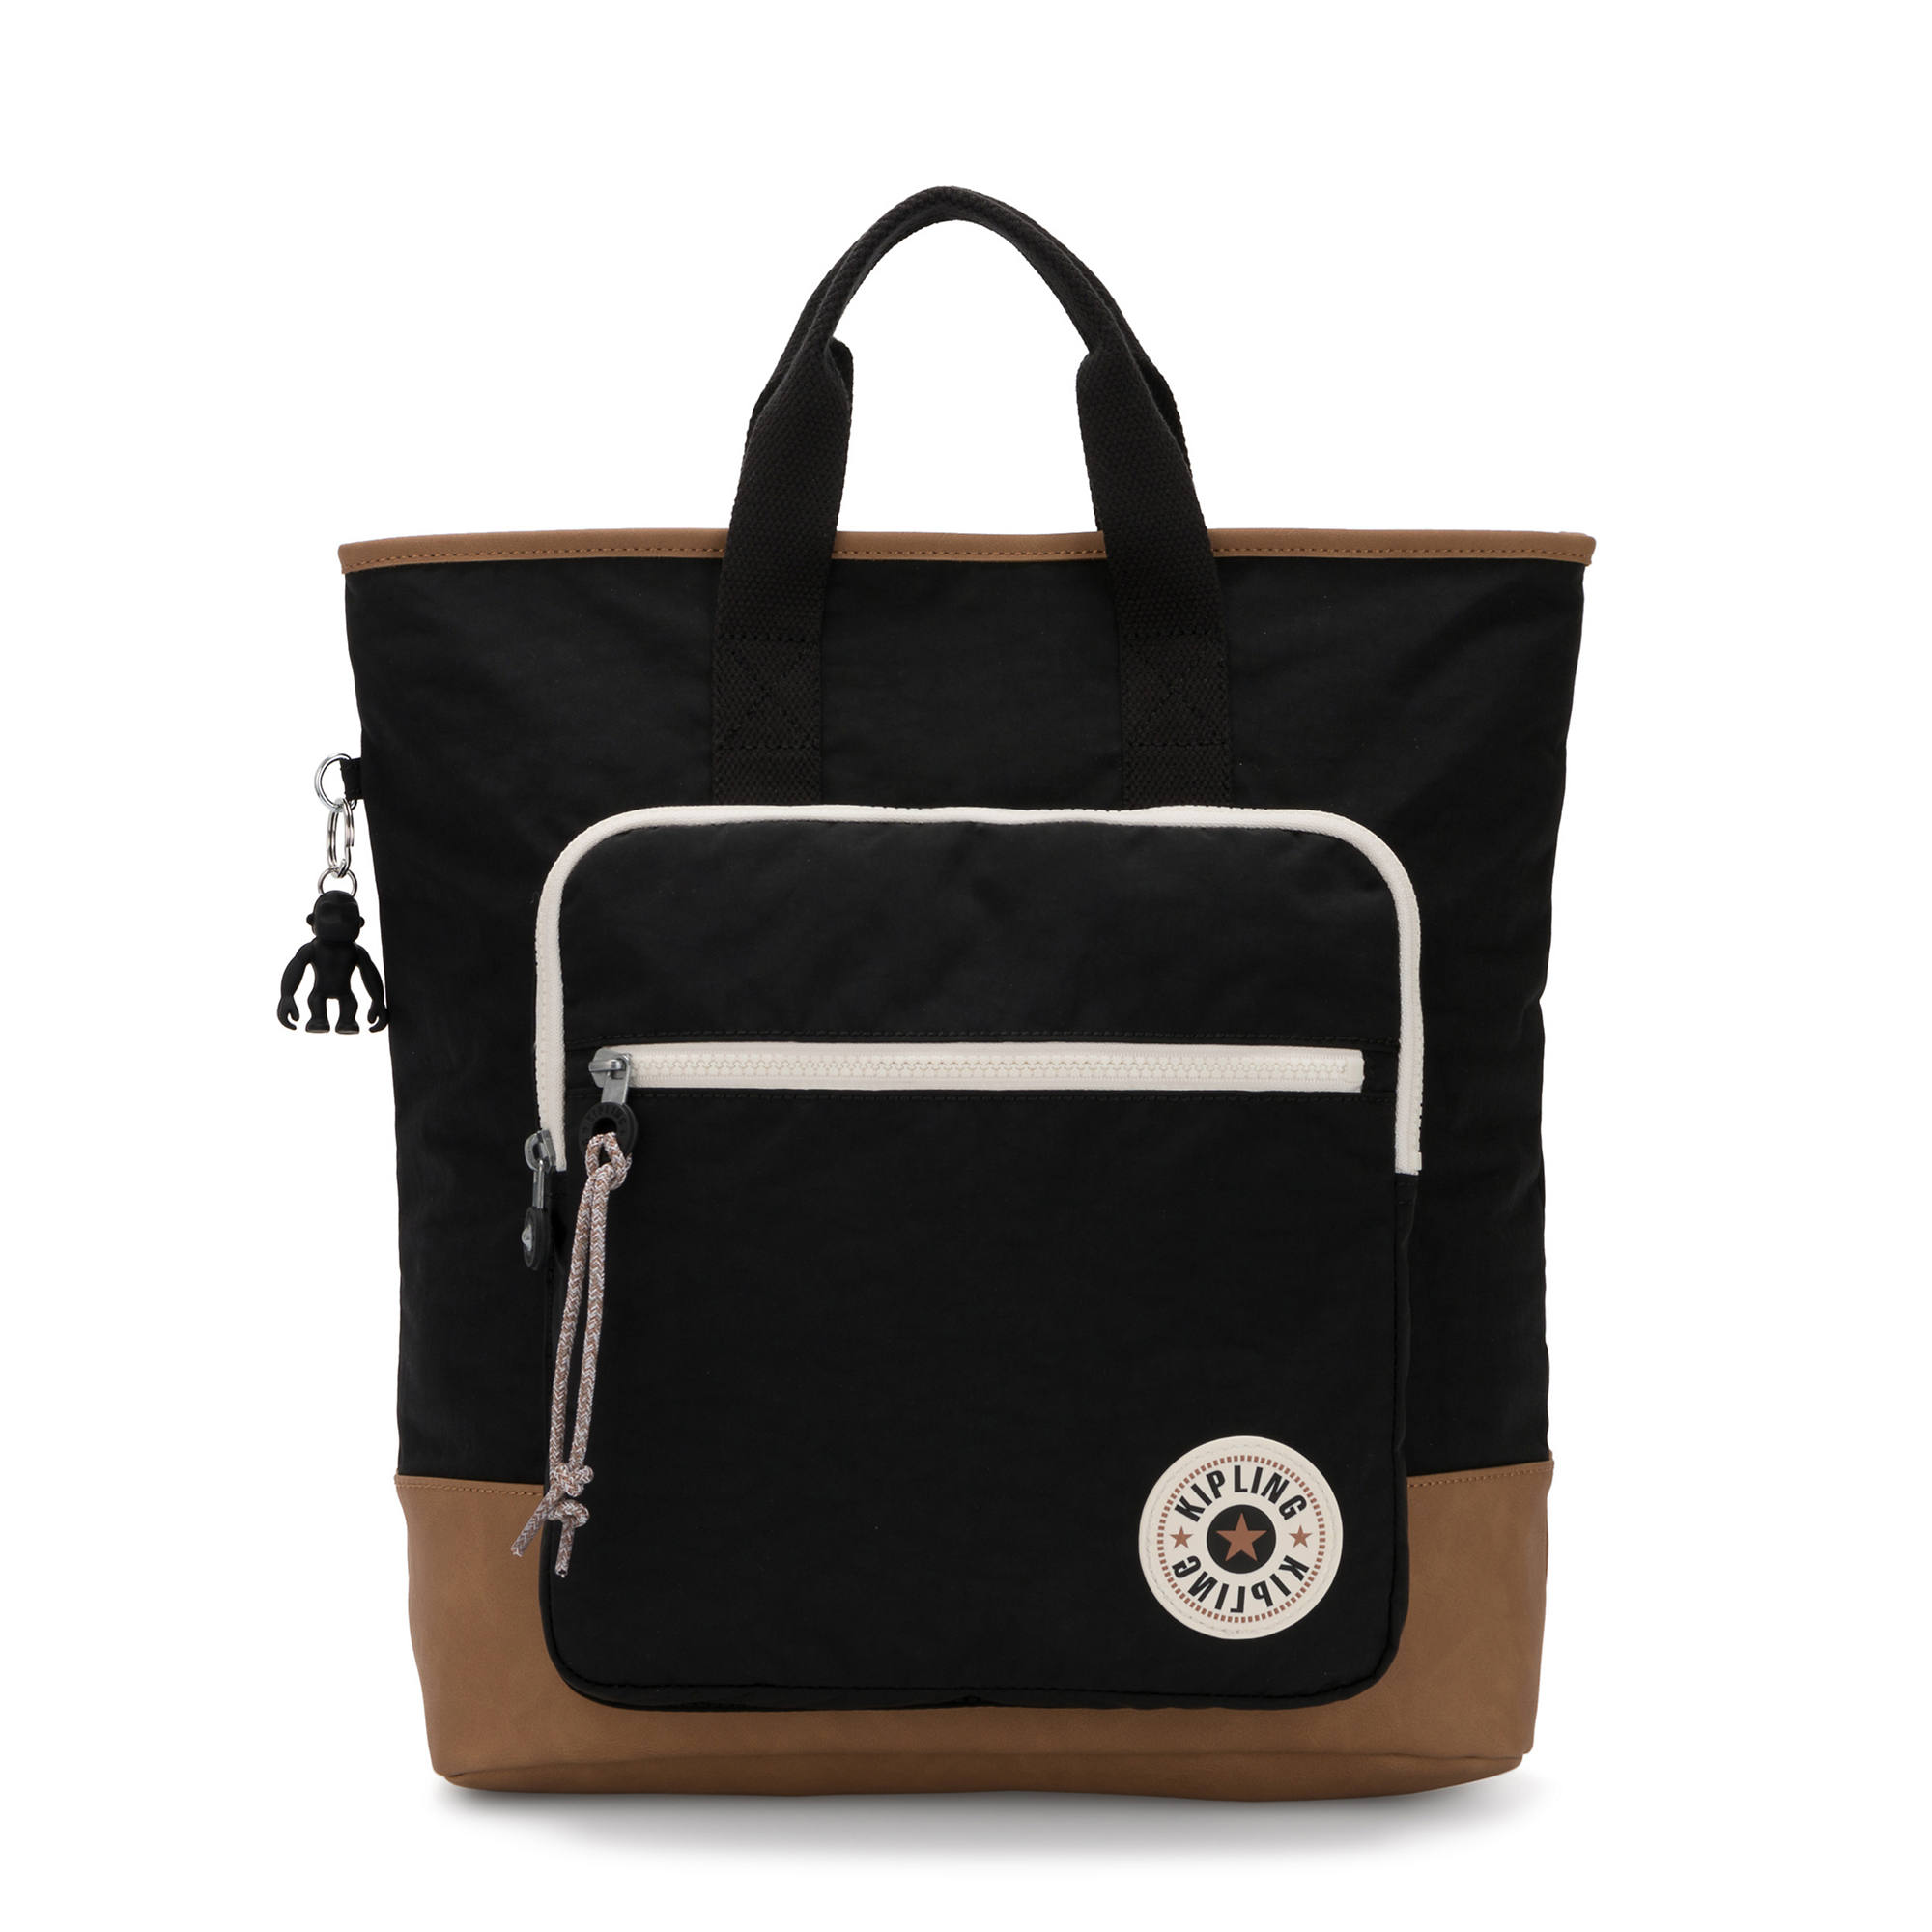 Sia Tote Backpack,Black Tan,large-zoomed